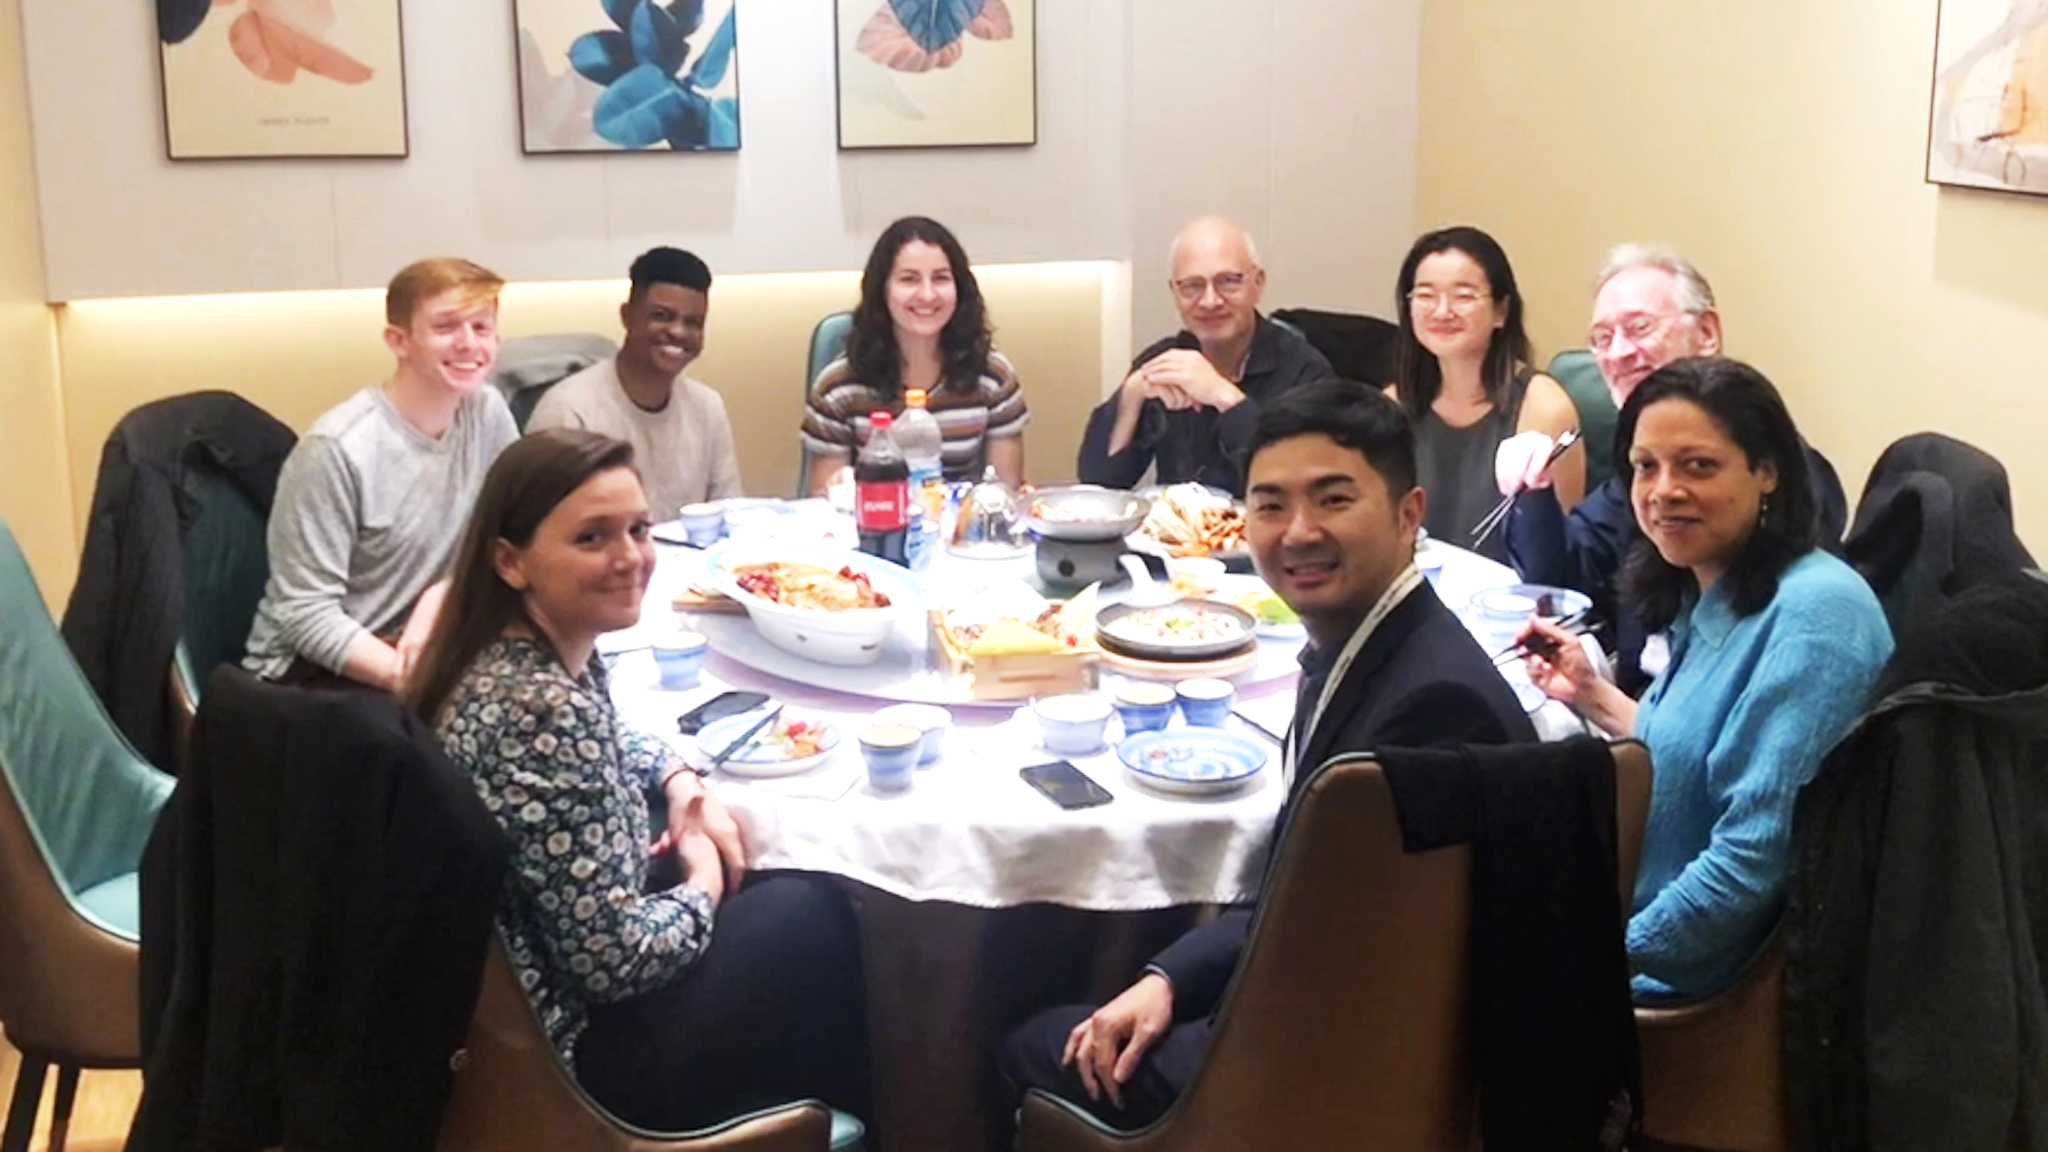 Dinner with the Juilliard String Quartet members, Dean Meyer and Dean Shen. Photo credit: Adam Meyer